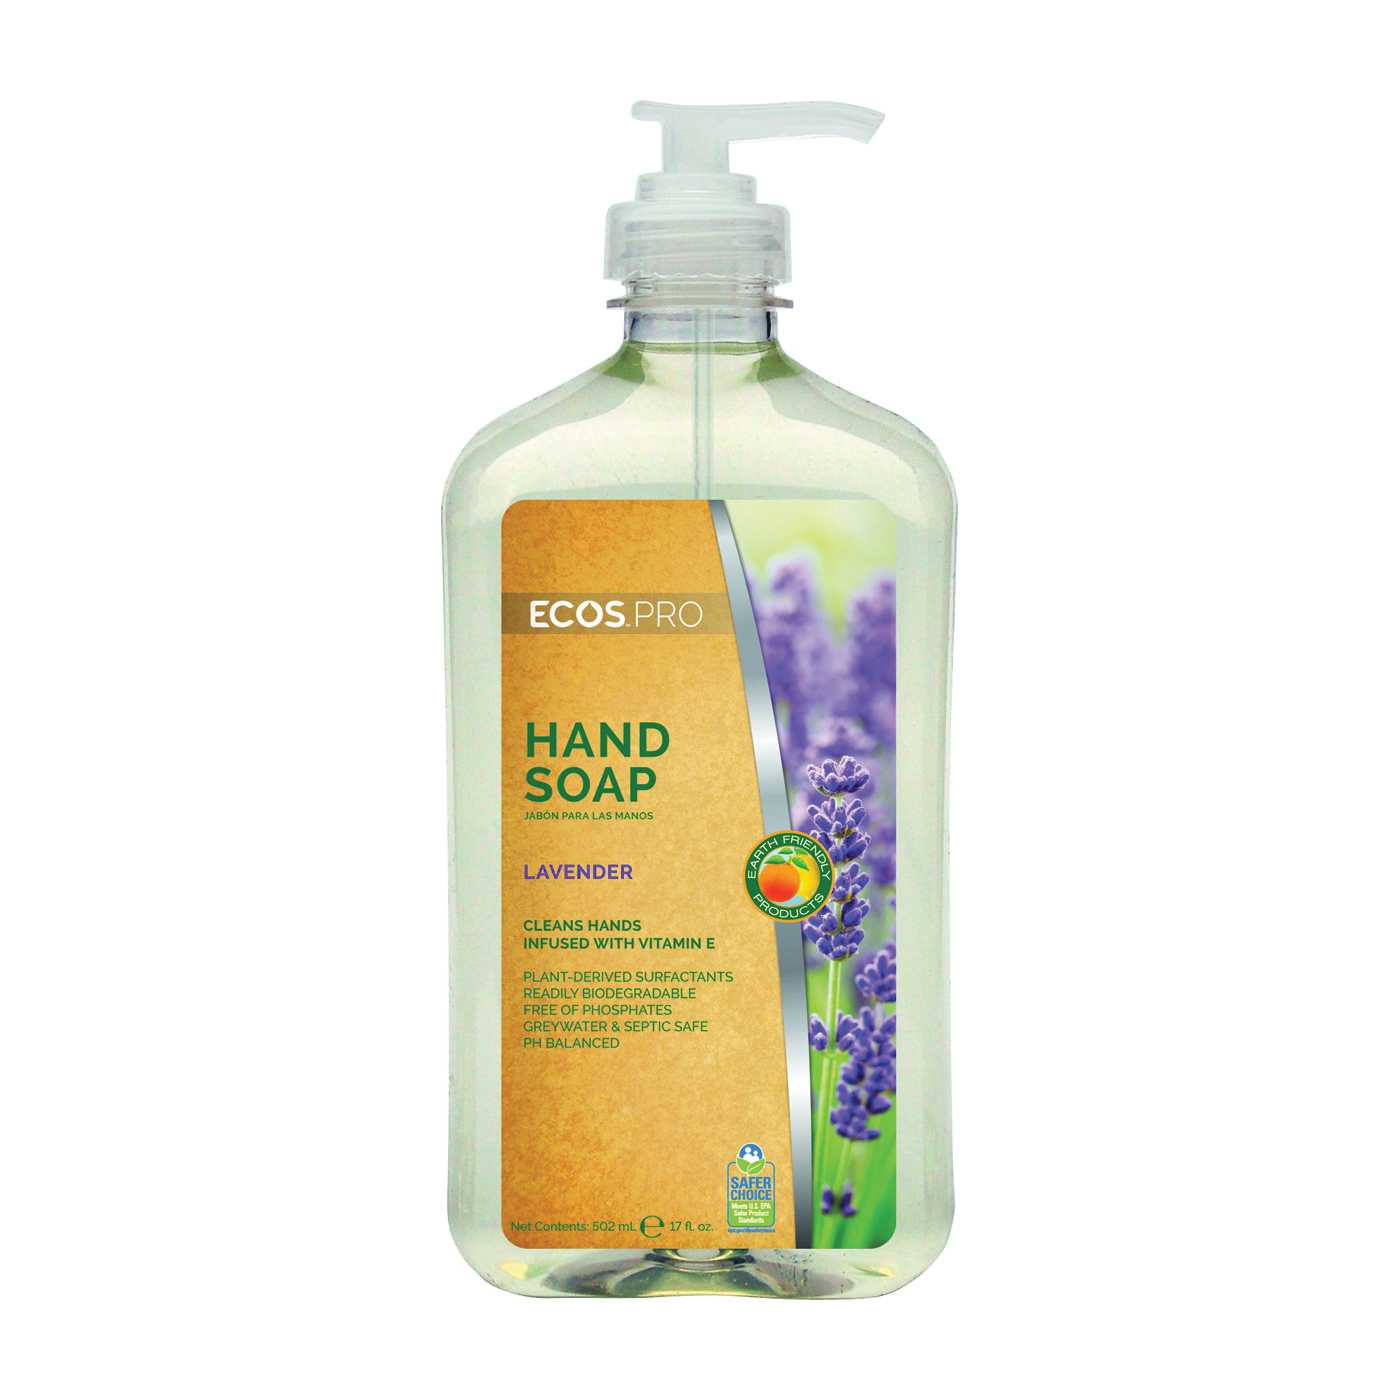 Picture of ECOS PL9665/6 Hand Soap Clear, Liquid, Clear, Lavender, 17 oz Package, Bottle